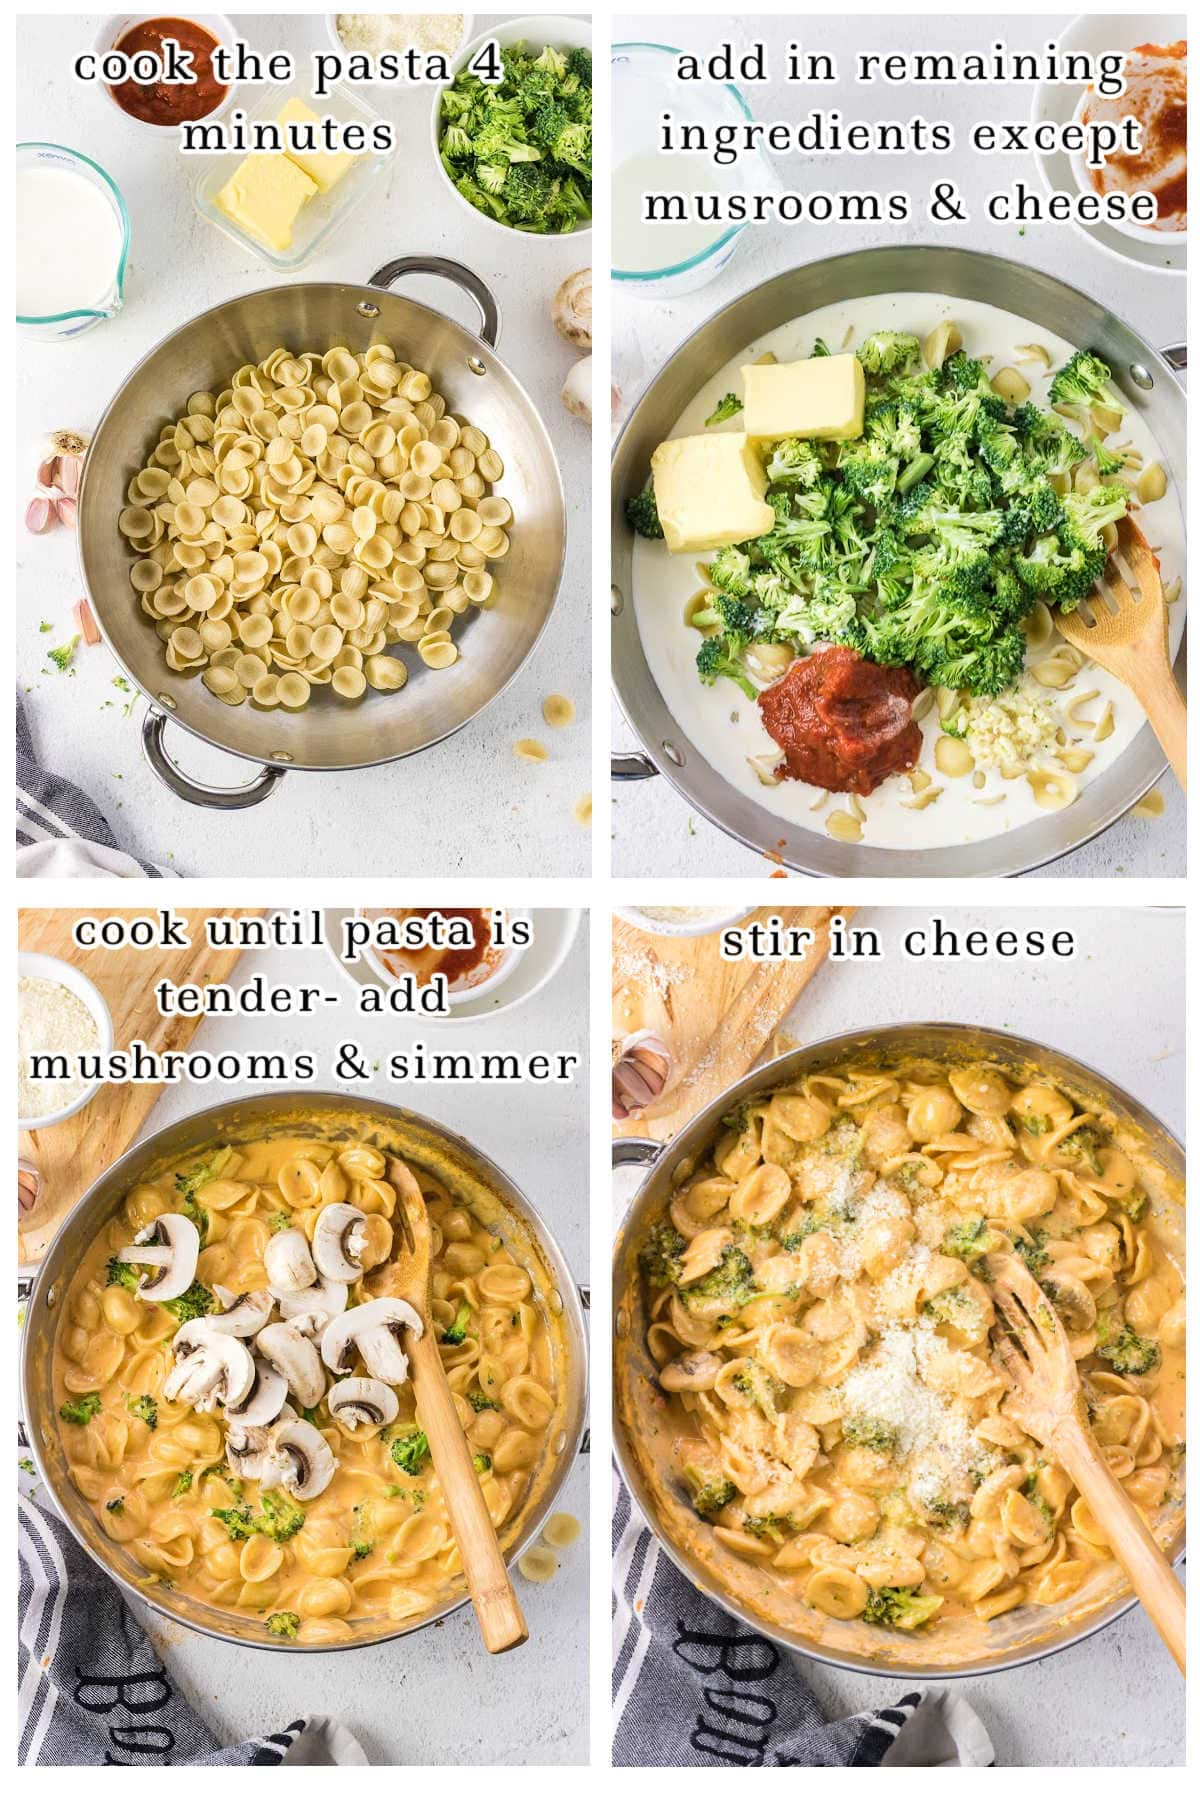 Step by step images showing how to make pasta con broccoli.